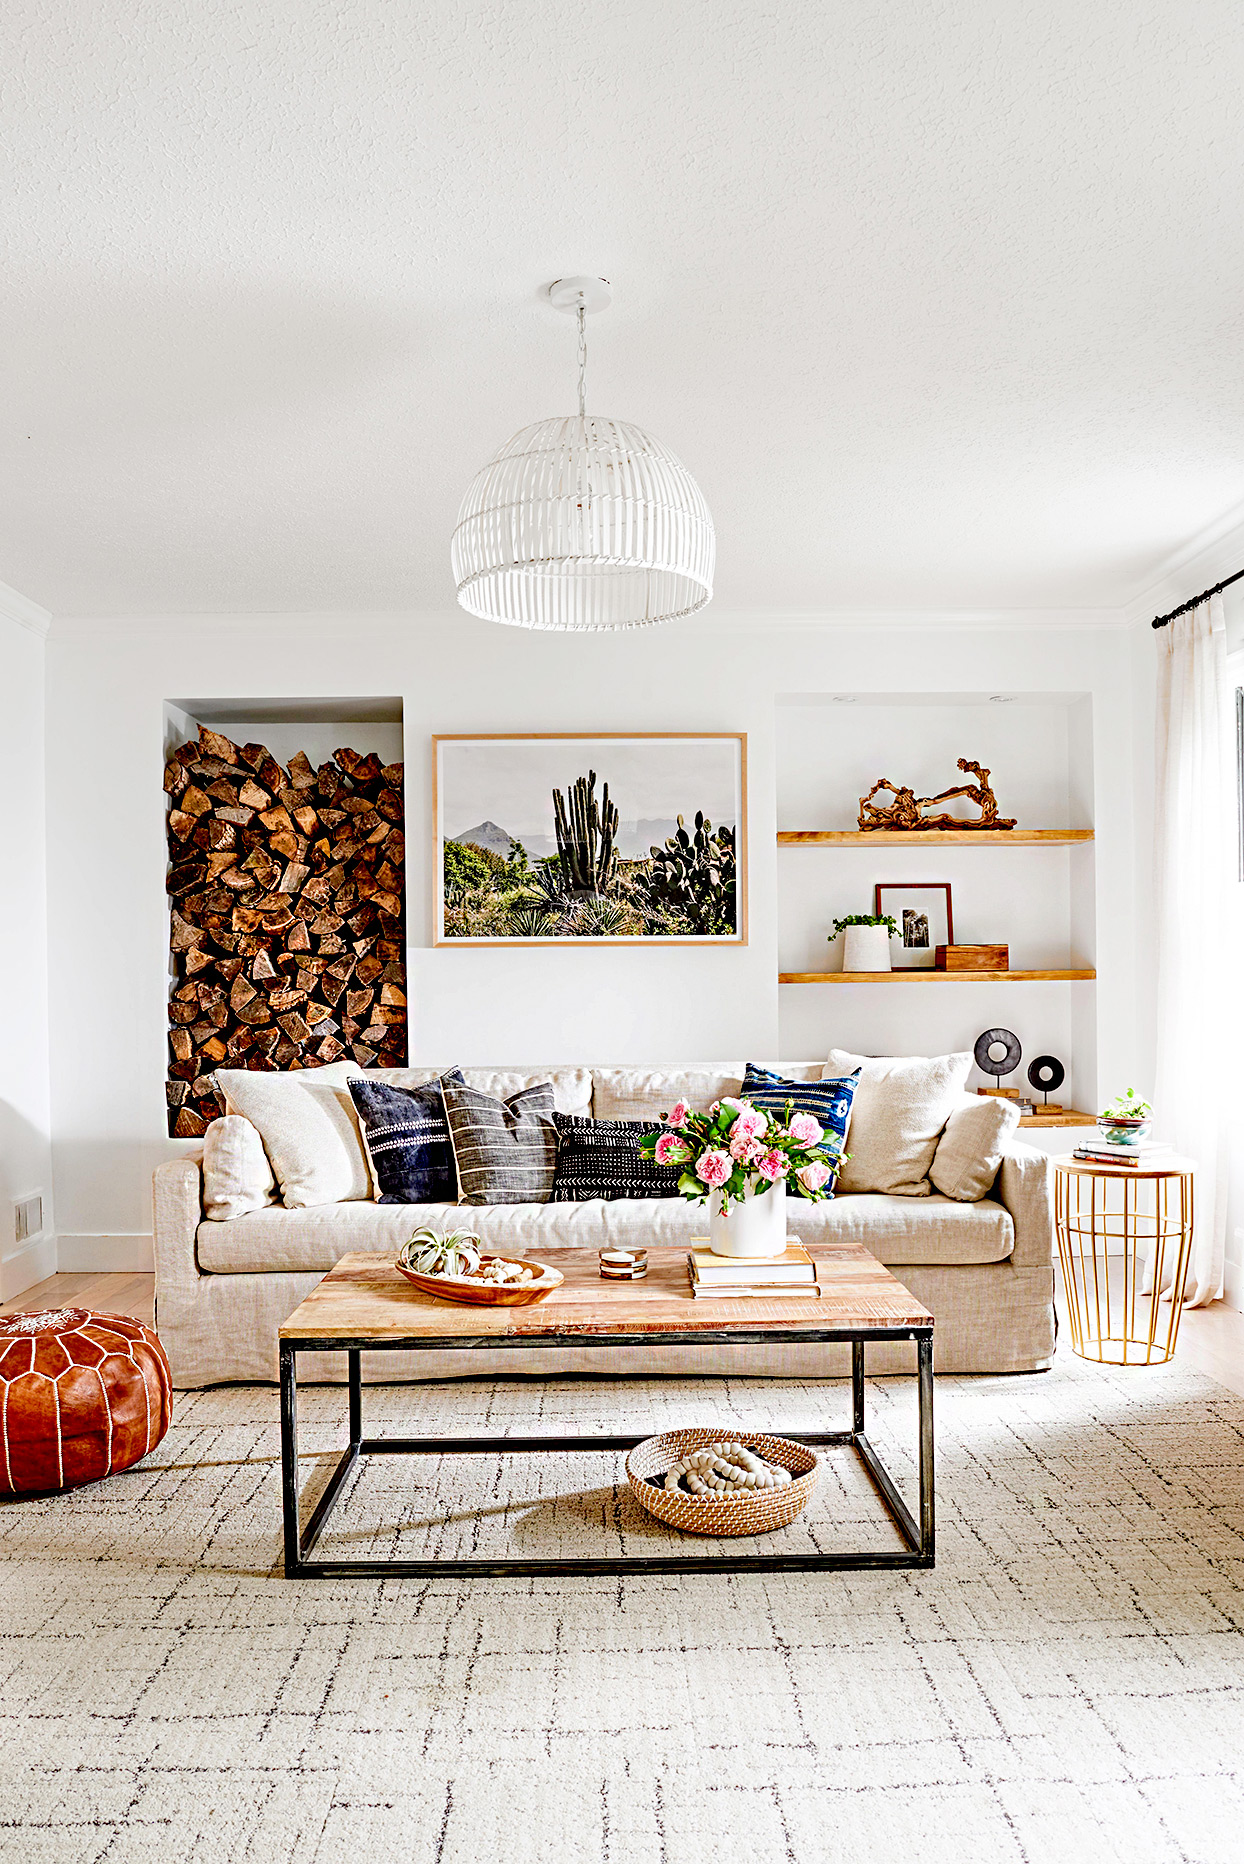 Living room with couch, coffee table, and stored wood